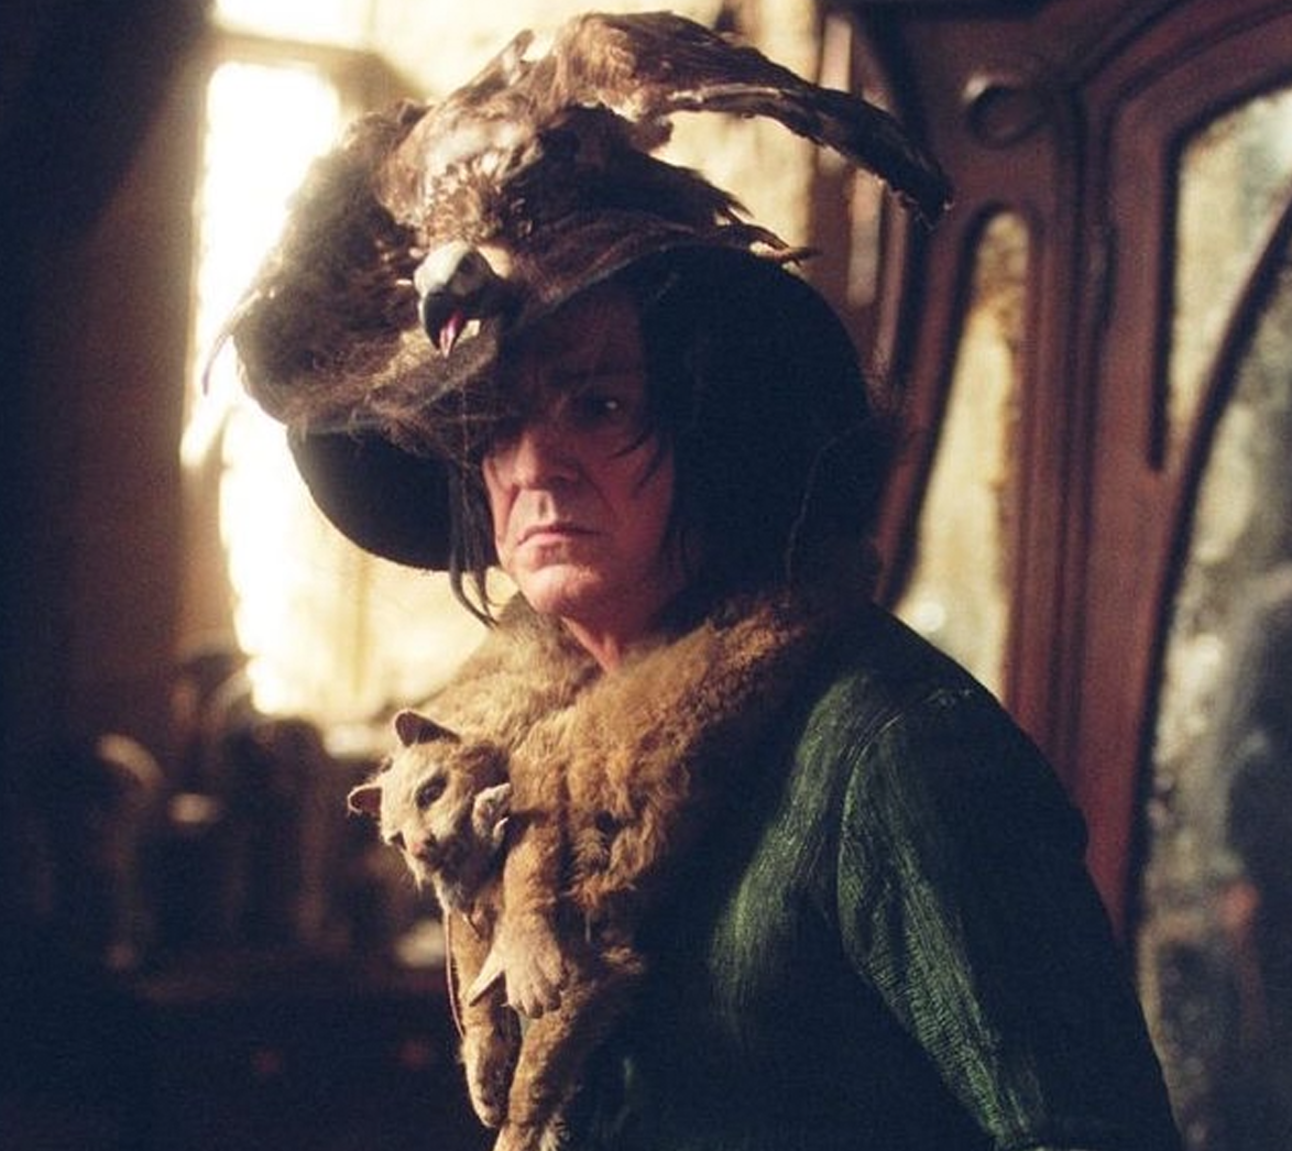 Snape boggart from Harry Potter